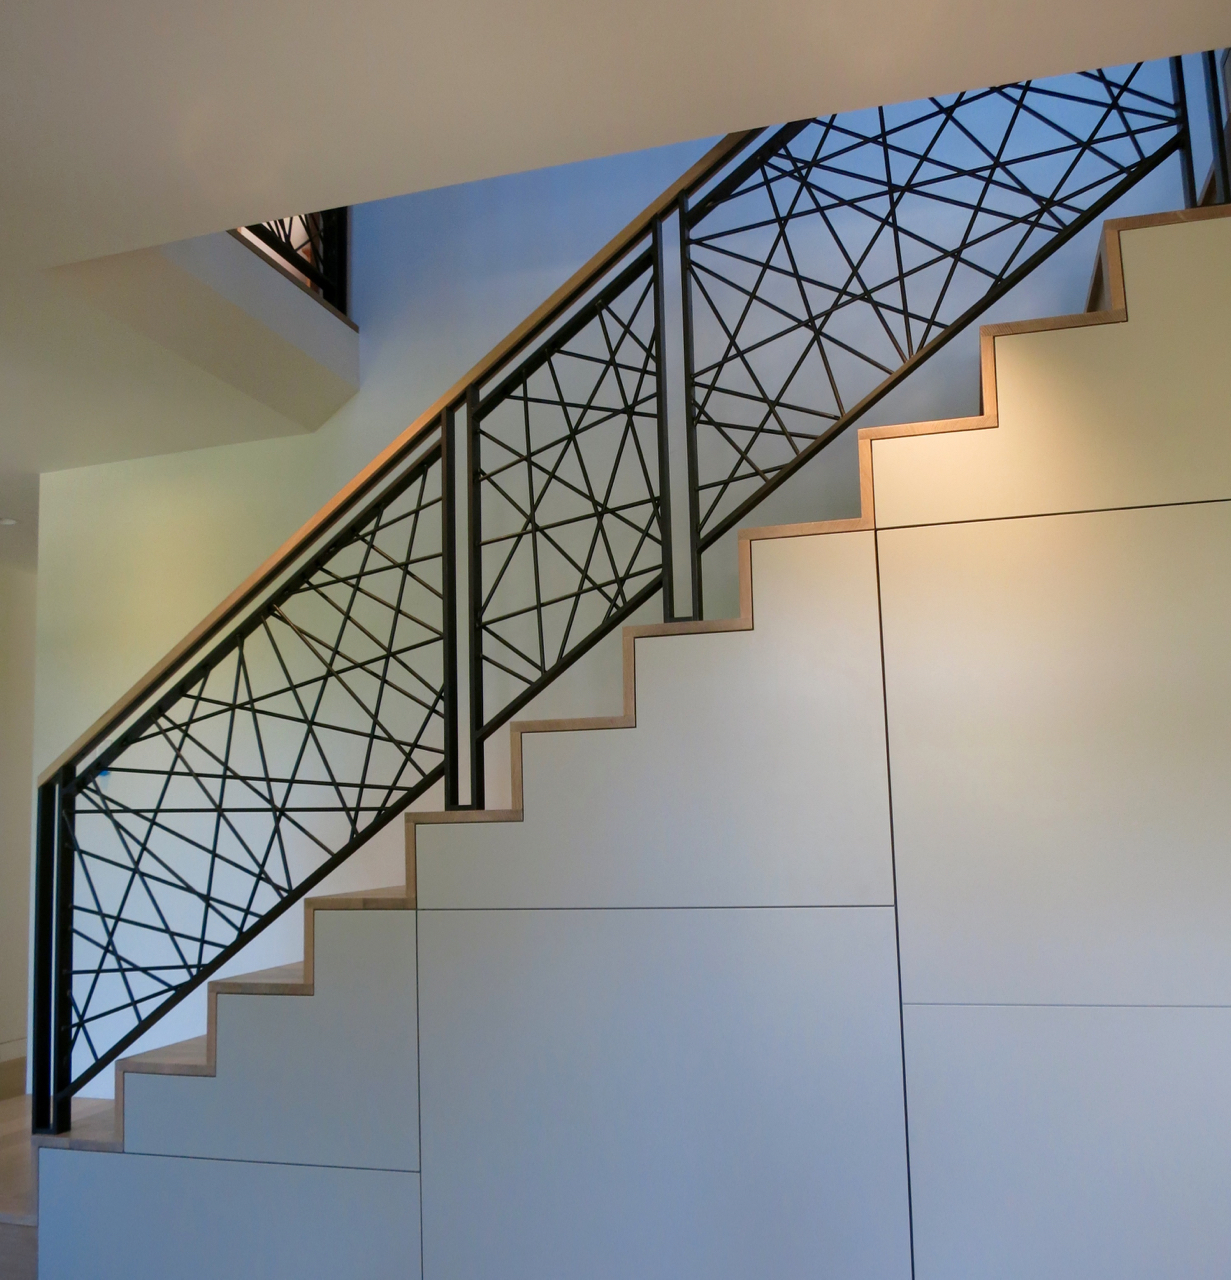 522 industries first impressions - Escaleras modernas interiores ...